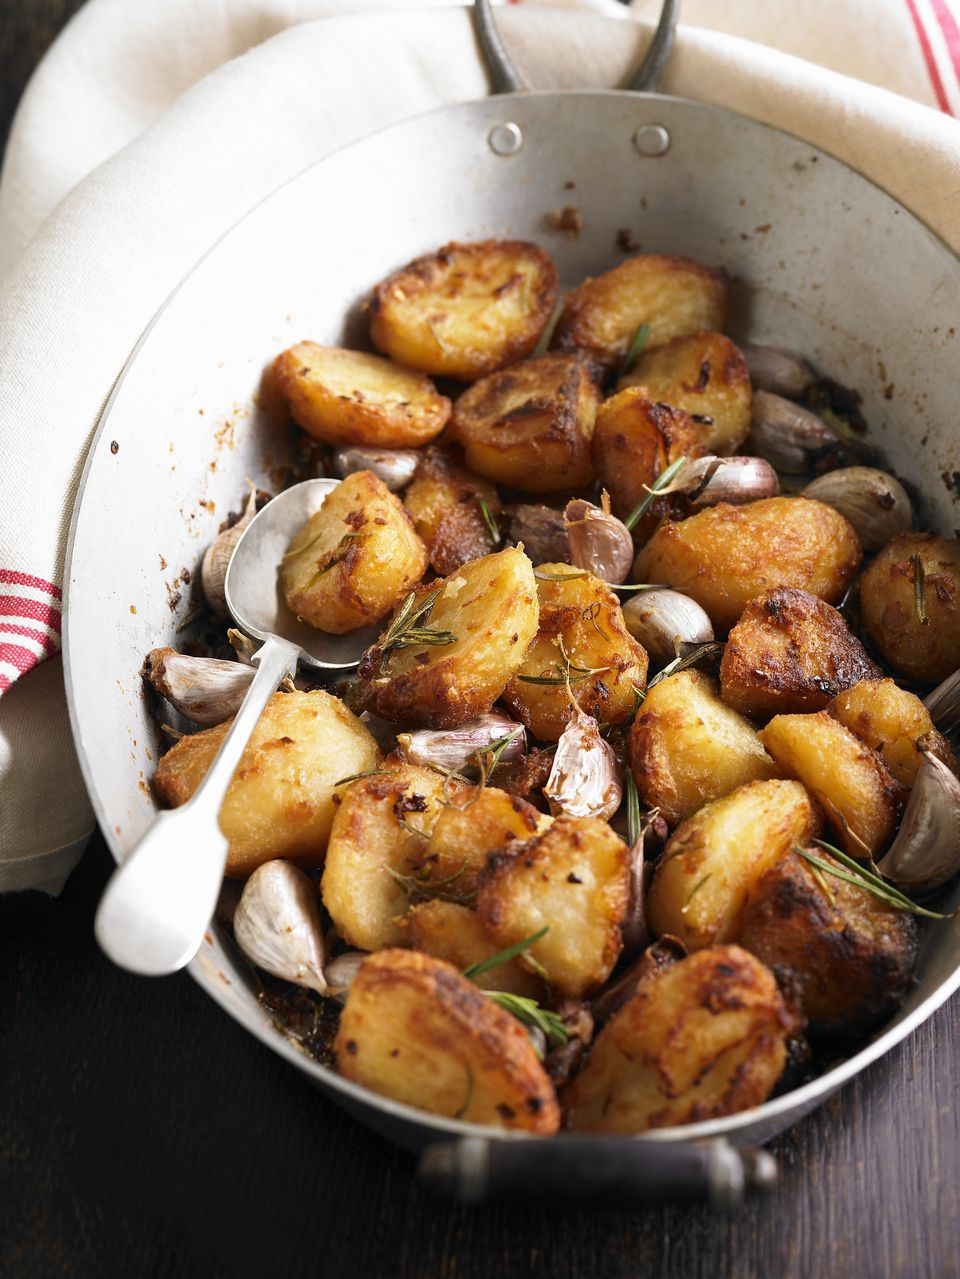 Roast potatoes with garlic and rosemary, close-up